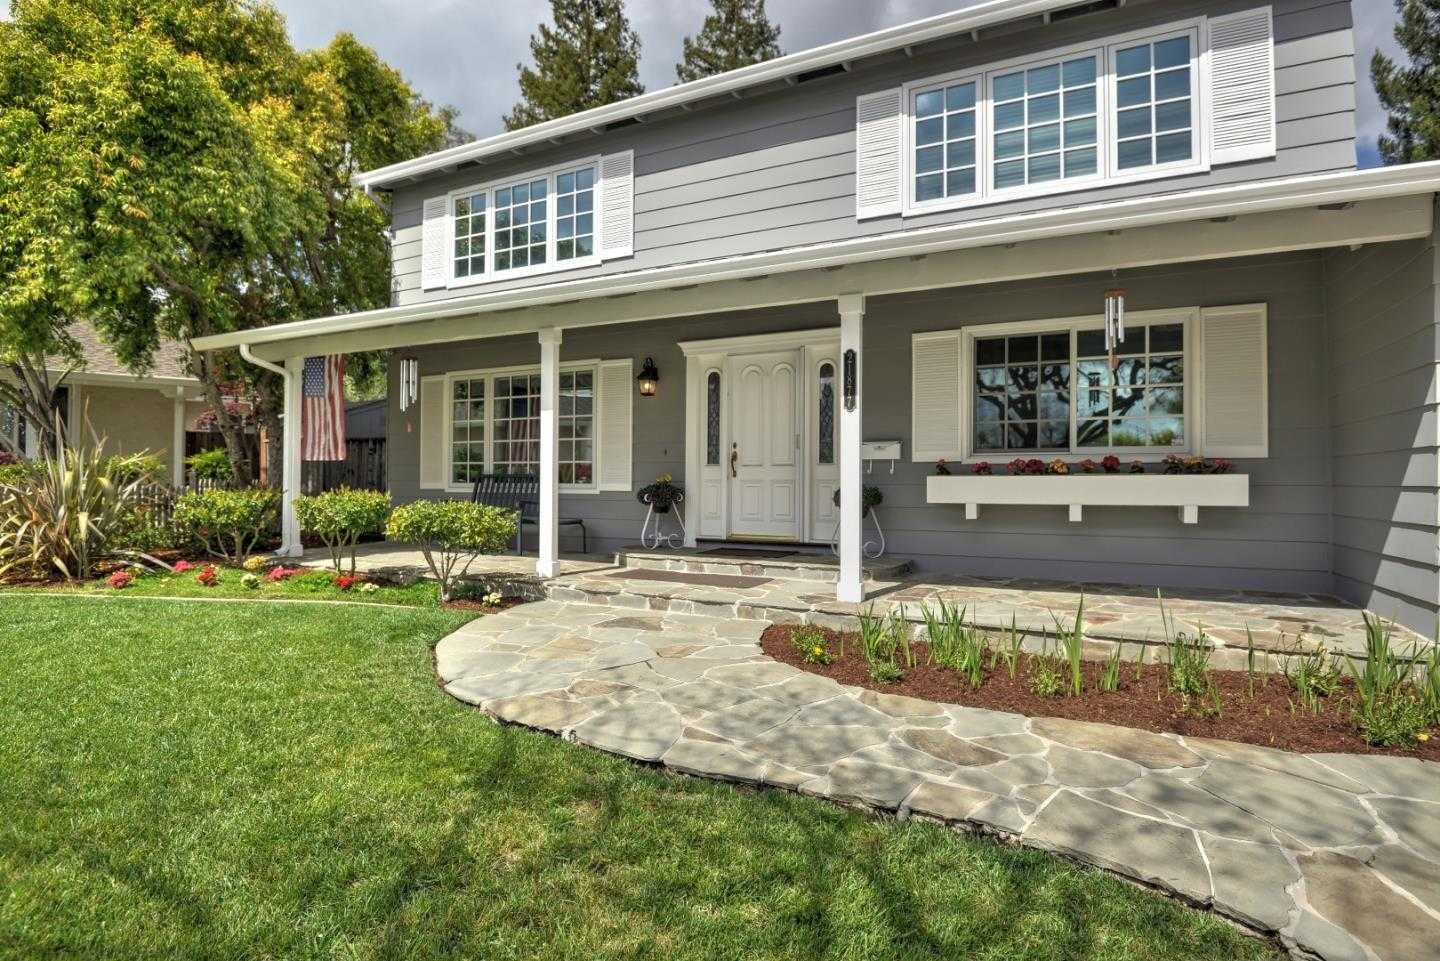 $2,525,000 - 5Br/3Ba -  for Sale in Cupertino